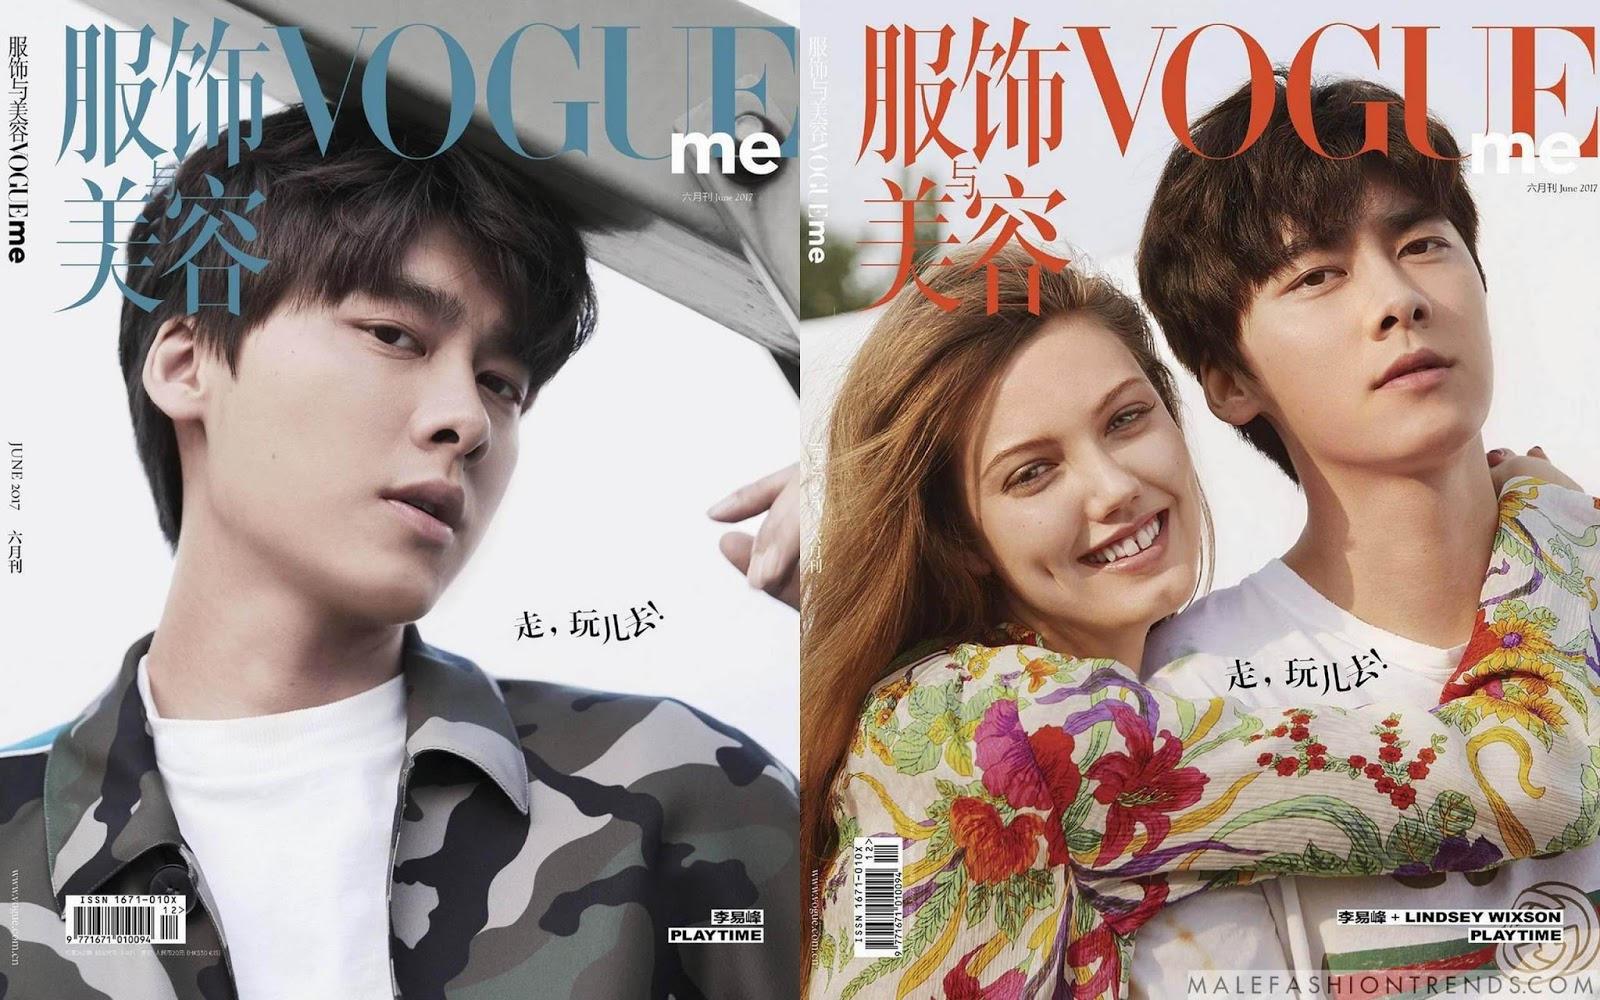 Li Yi Feng para Vogue China Me Junio 2017